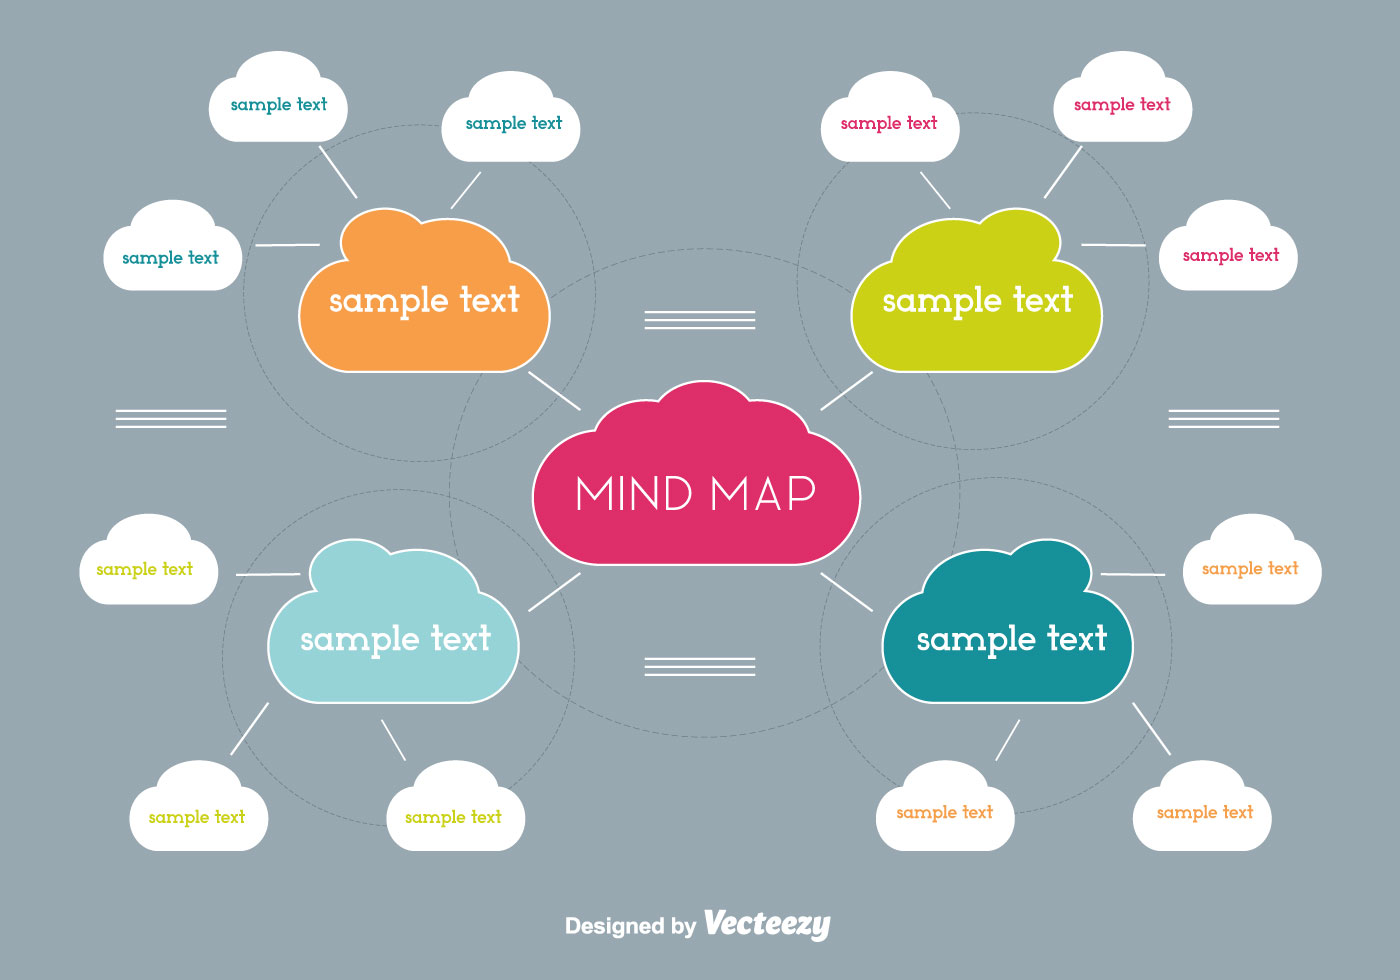 network diagram template word 2004 grand cherokee wiring free colorful mind map vector - download art, stock graphics & images